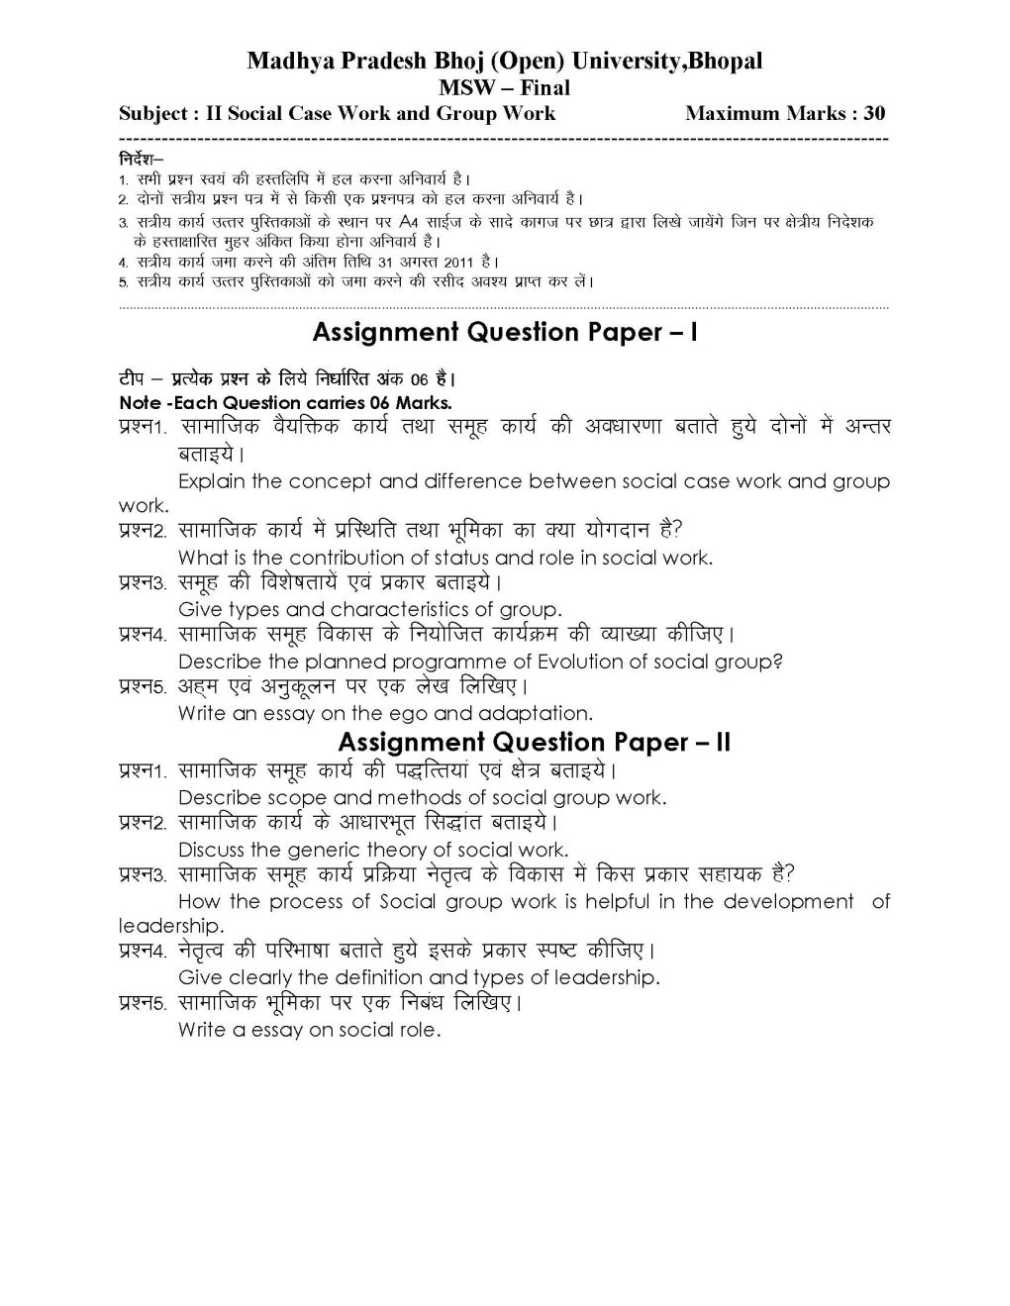 006 Bhoj University Bhopal Msw Essay Example What Makes Good Awesome A Leader Pdf Successful Full